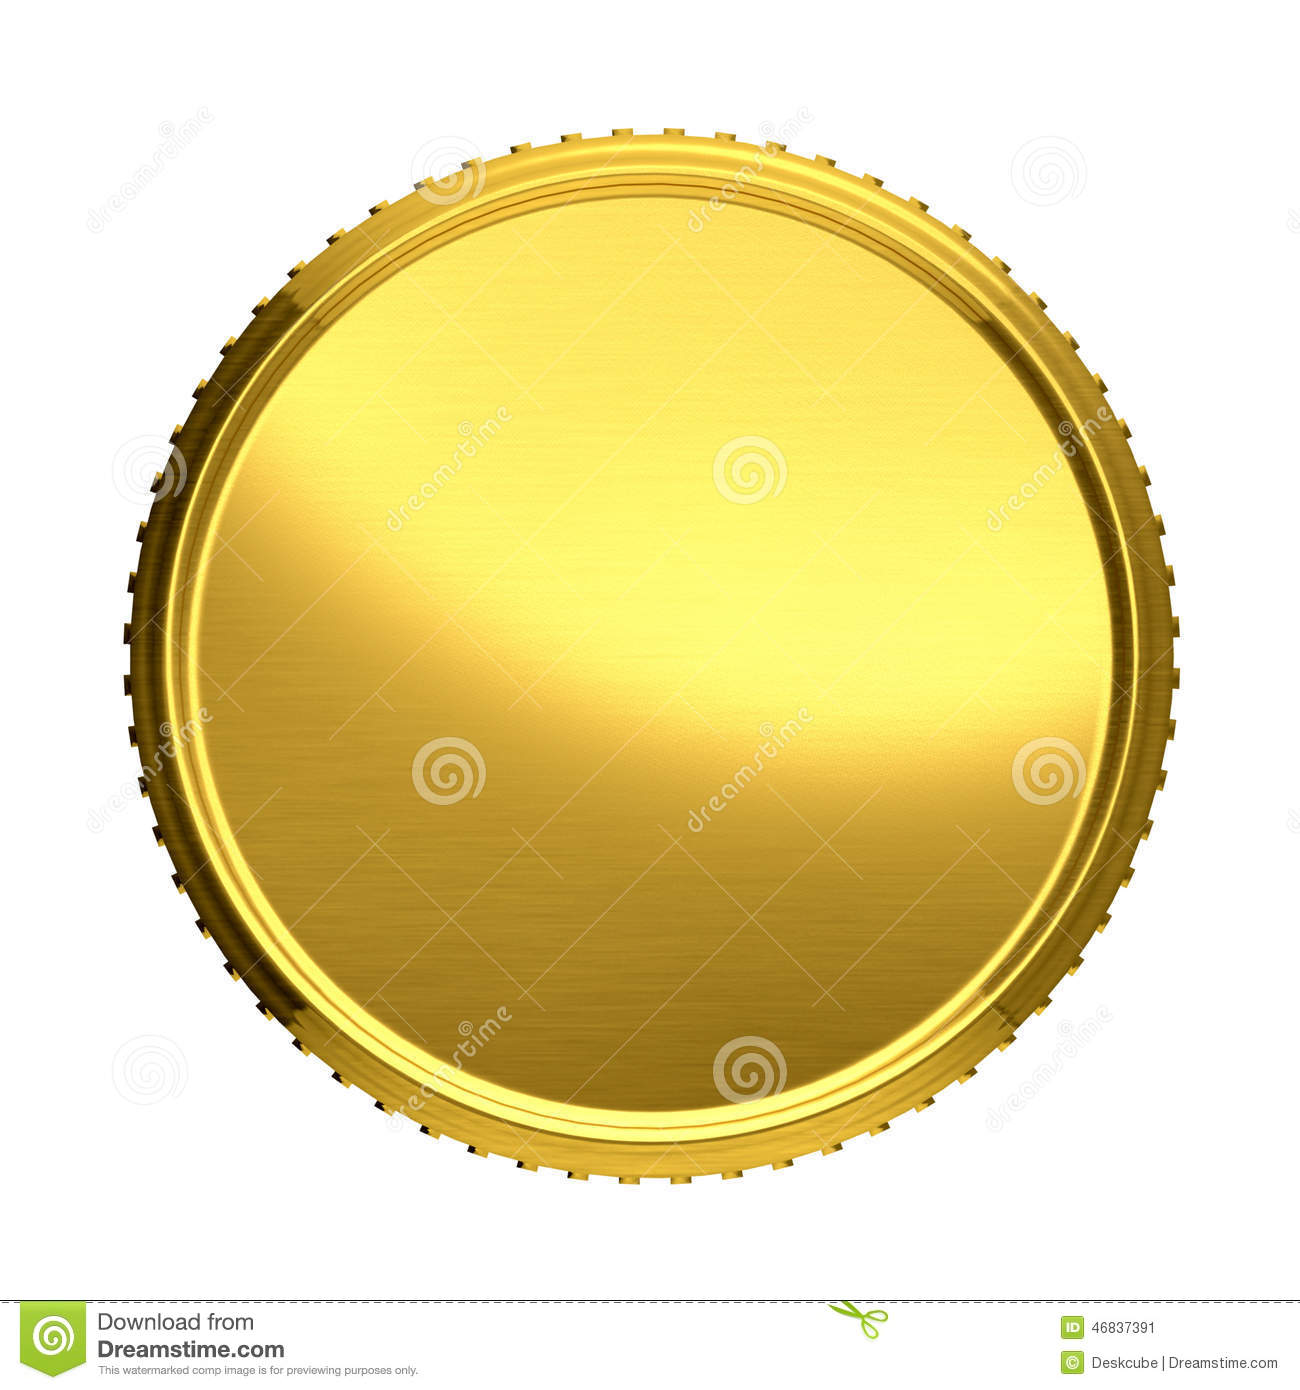 Gold coin. illustration isolated on white background.